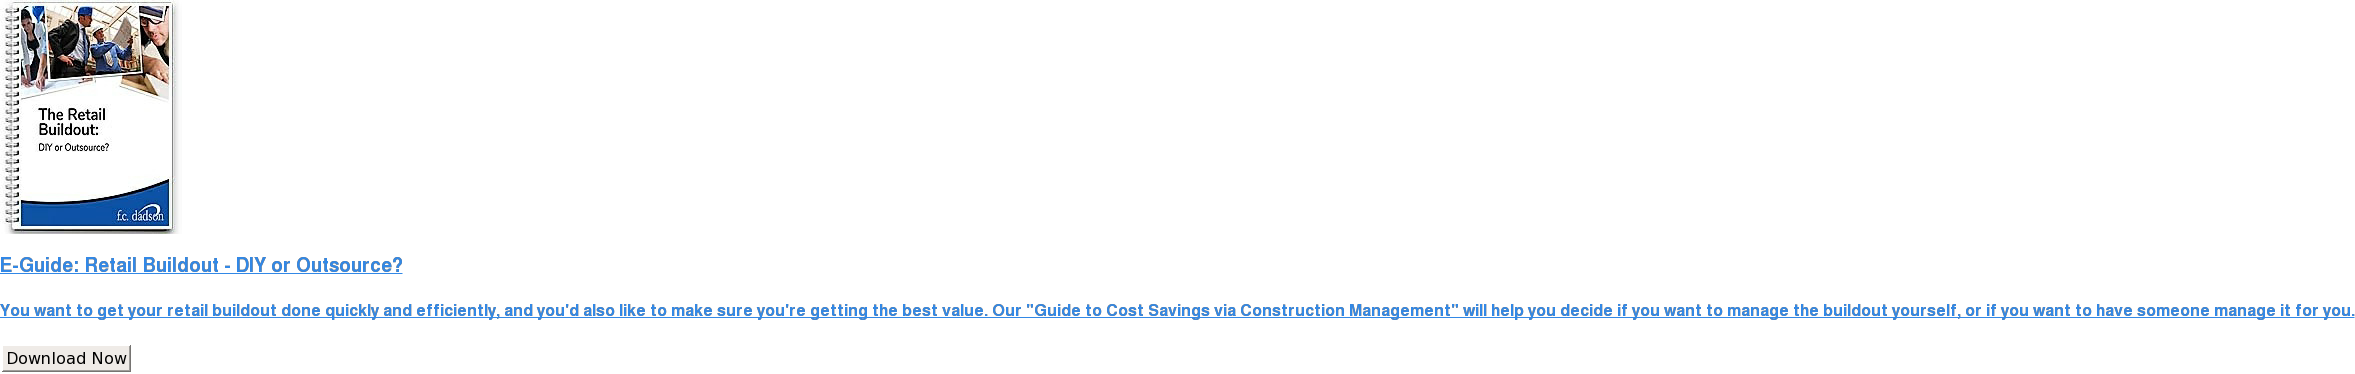 "E-Guide: Retail Buildout - DIY or Outsource?  You want to get your retail buildout done quickly and efficiently, and you'd  also like to make sure you're getting the best value. Our ""Guide to Cost  Savings via Construction Management"" will help you decide if you want to manage  the buildout yourself, or if you want to have someone manage it for you. Download Now"